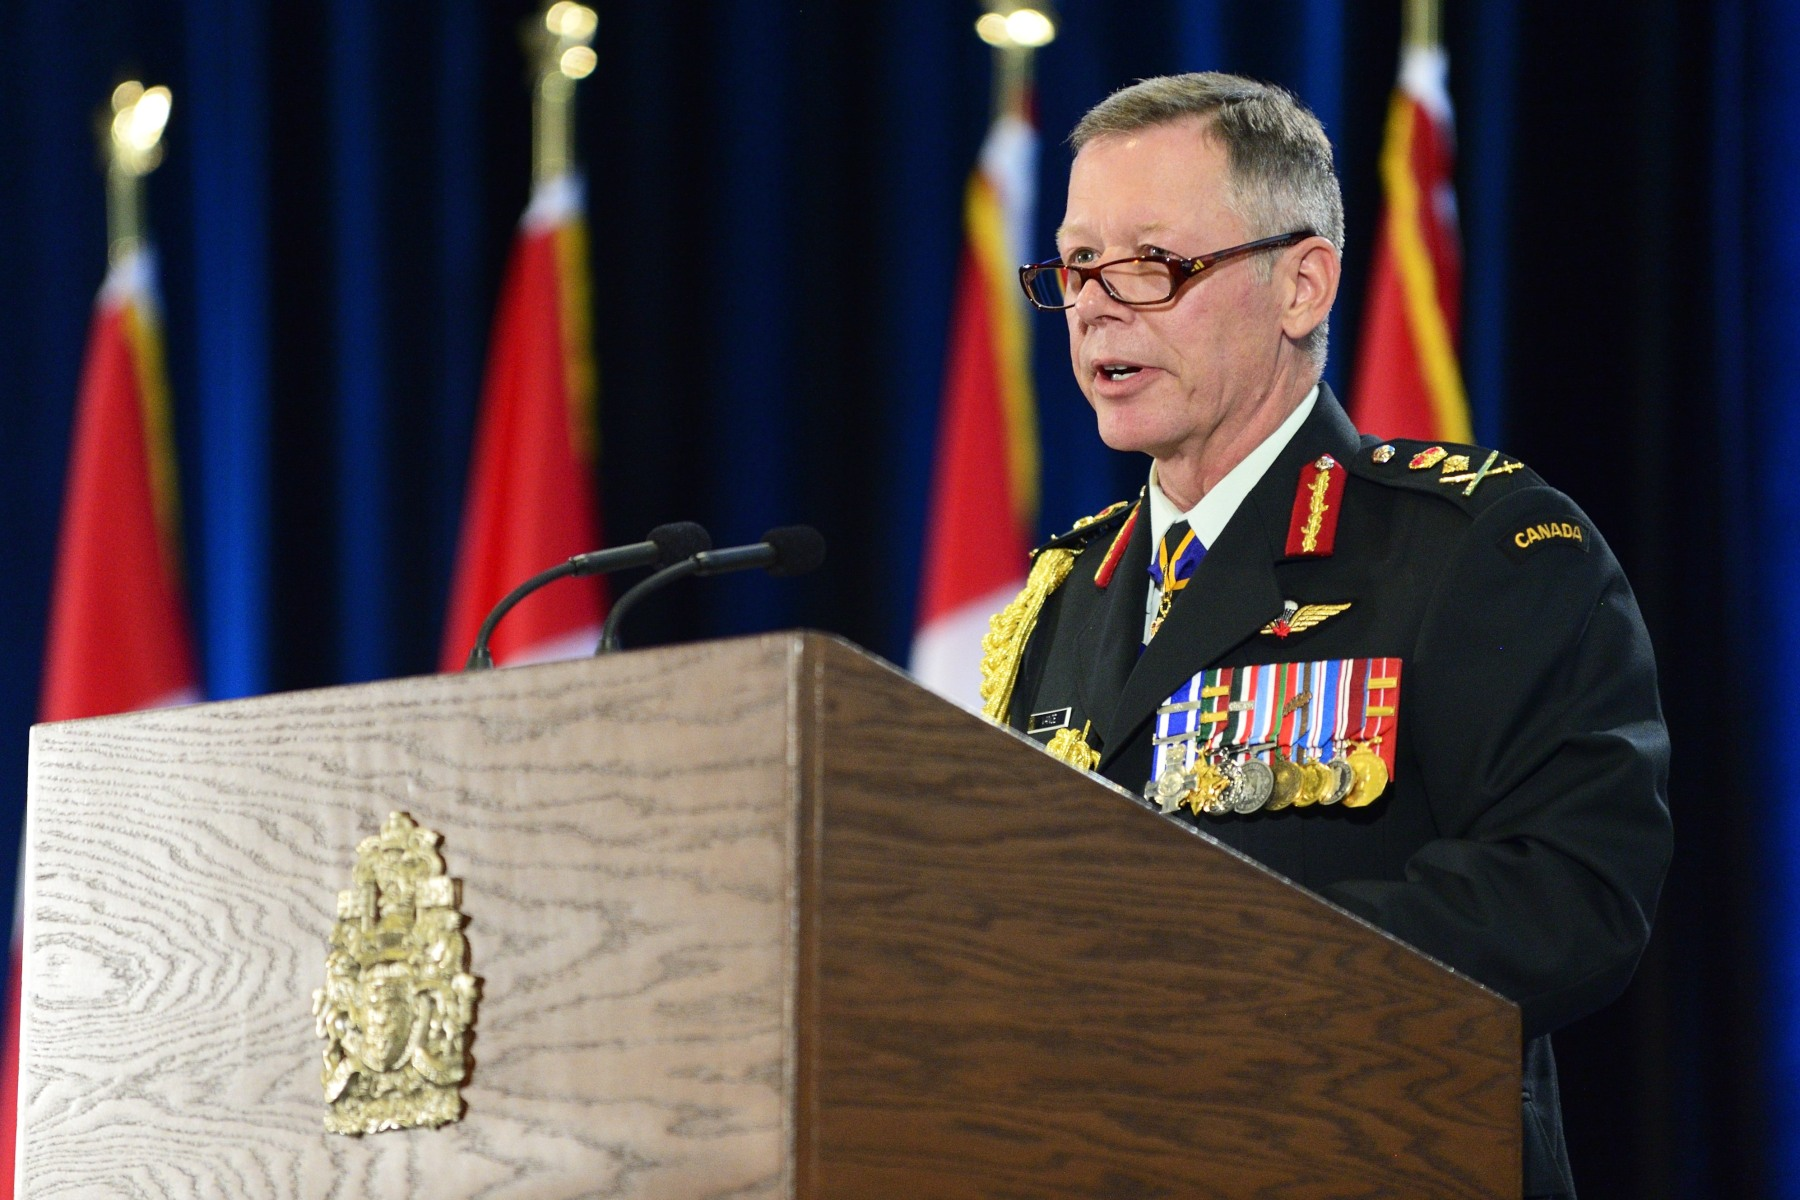 General Vance addressed the guests for the first time as the Chief of the Defence Staff.